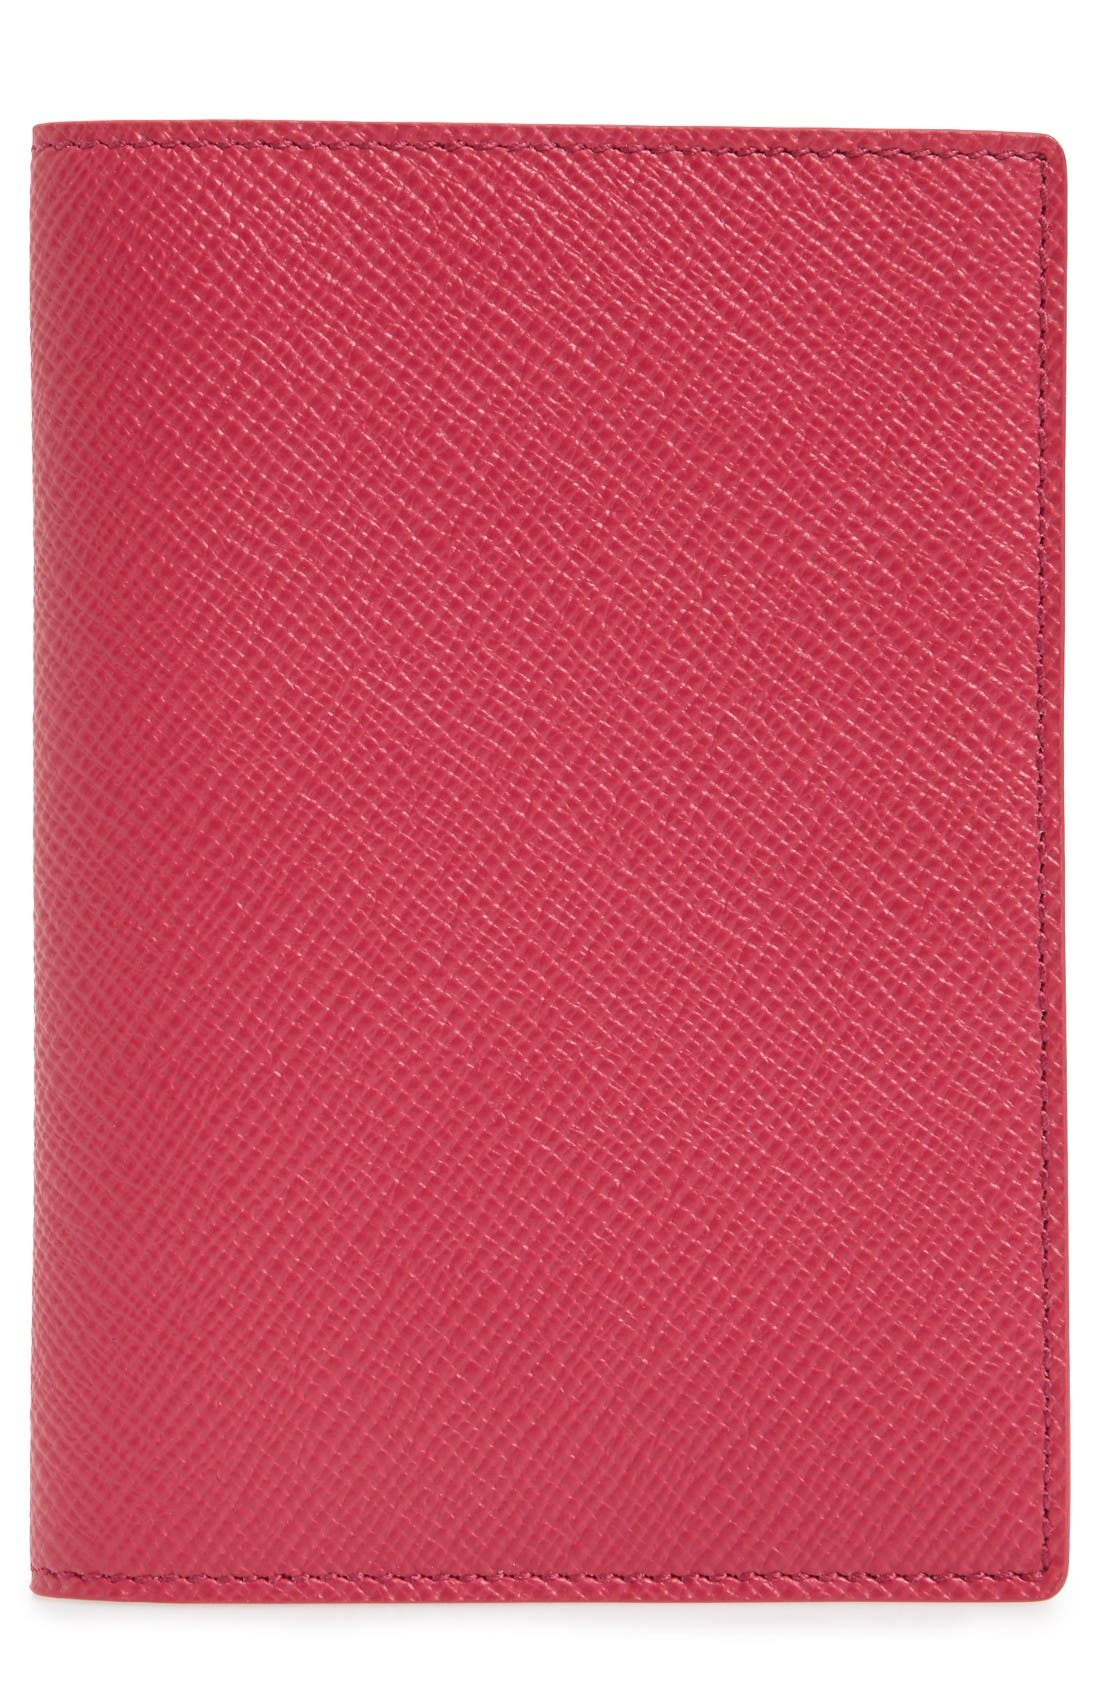 SMYTHSON Panama Calfskin Leather Passport Holder